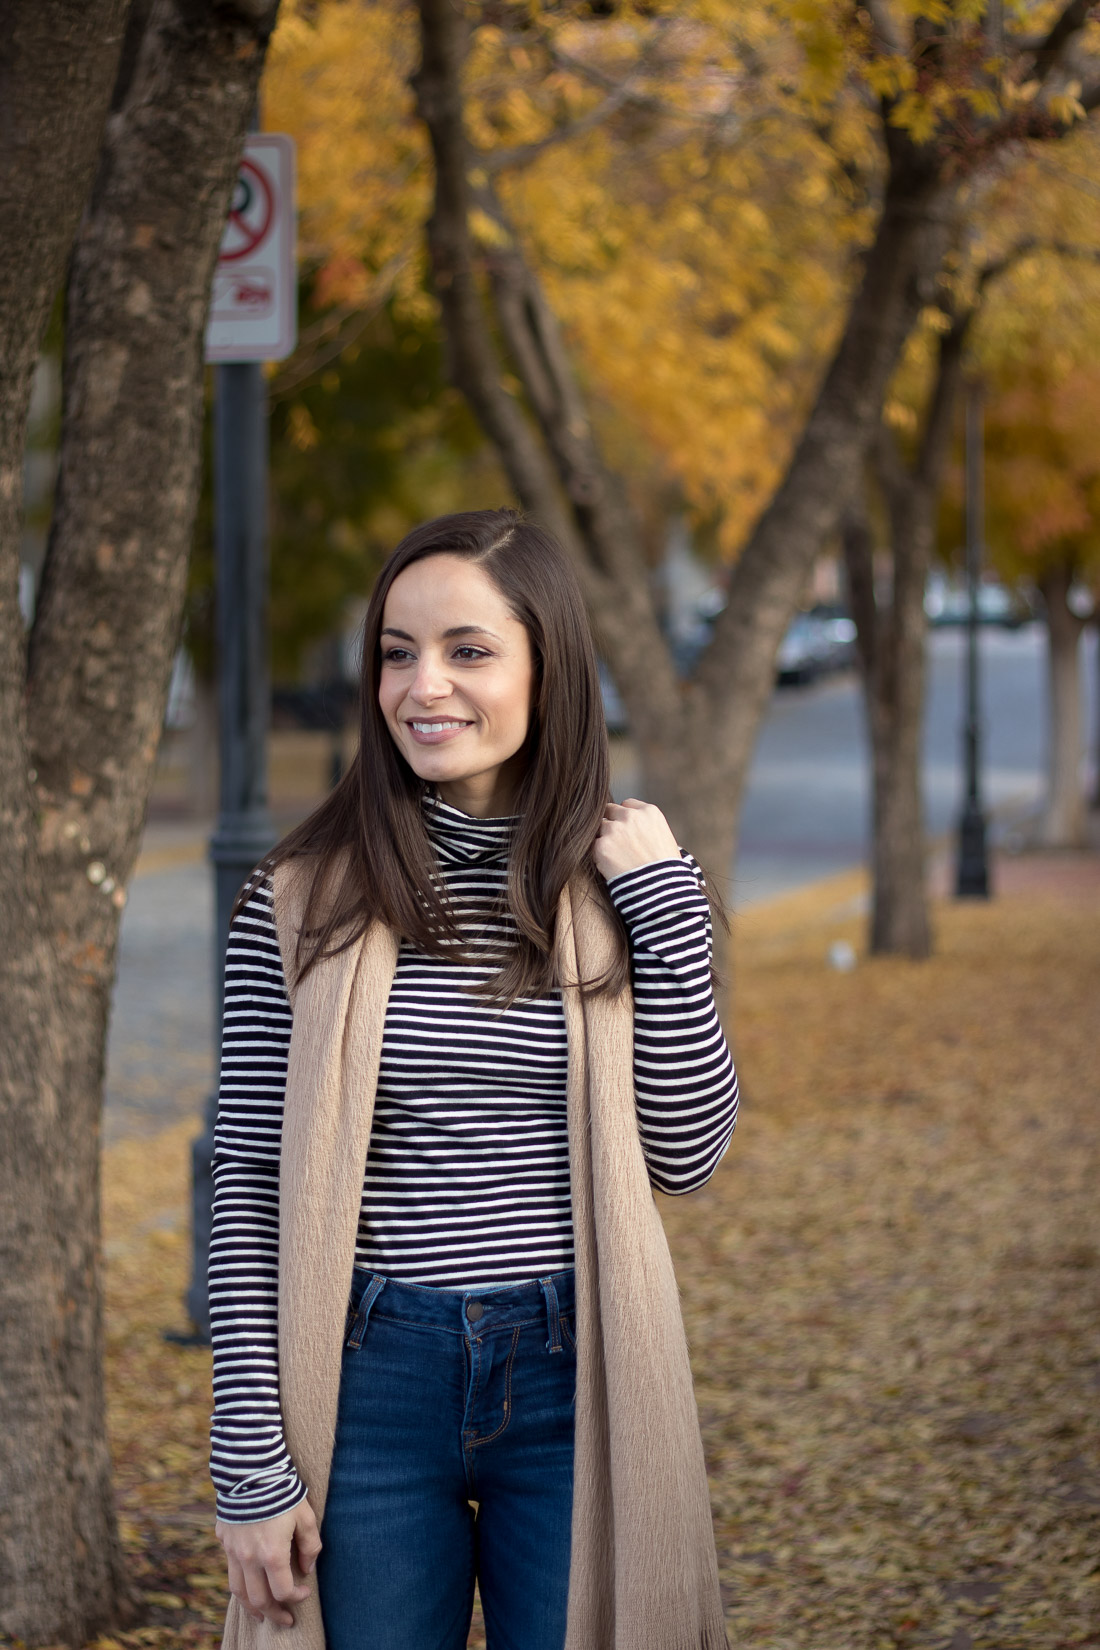 J. Crew Tissue Turtleneck T-Shirt Styled by Blogger Brooke of Pumps & Push-Ups